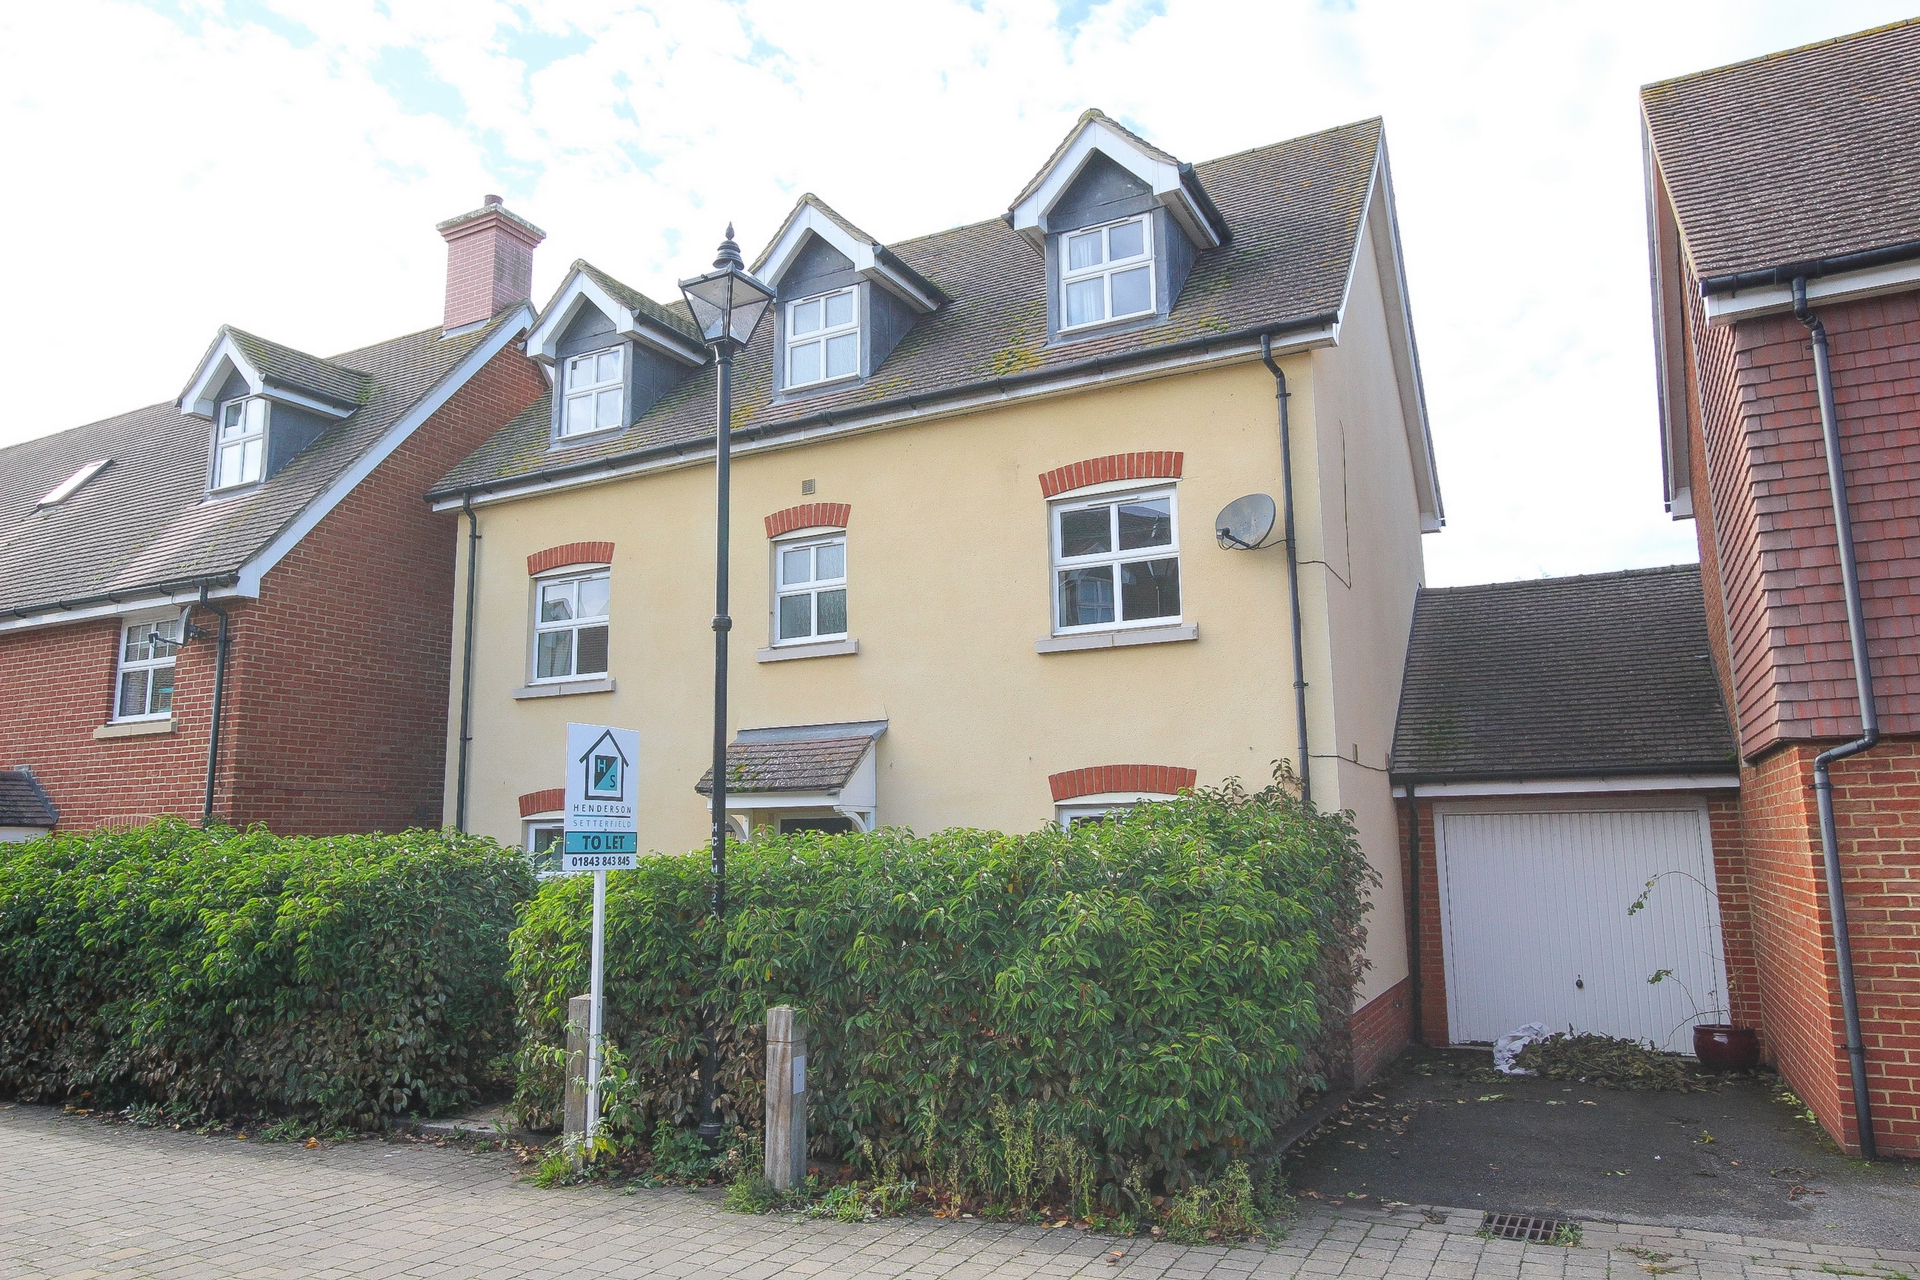 5 bed house to rent in Cheney Road, Minster, CT12 0